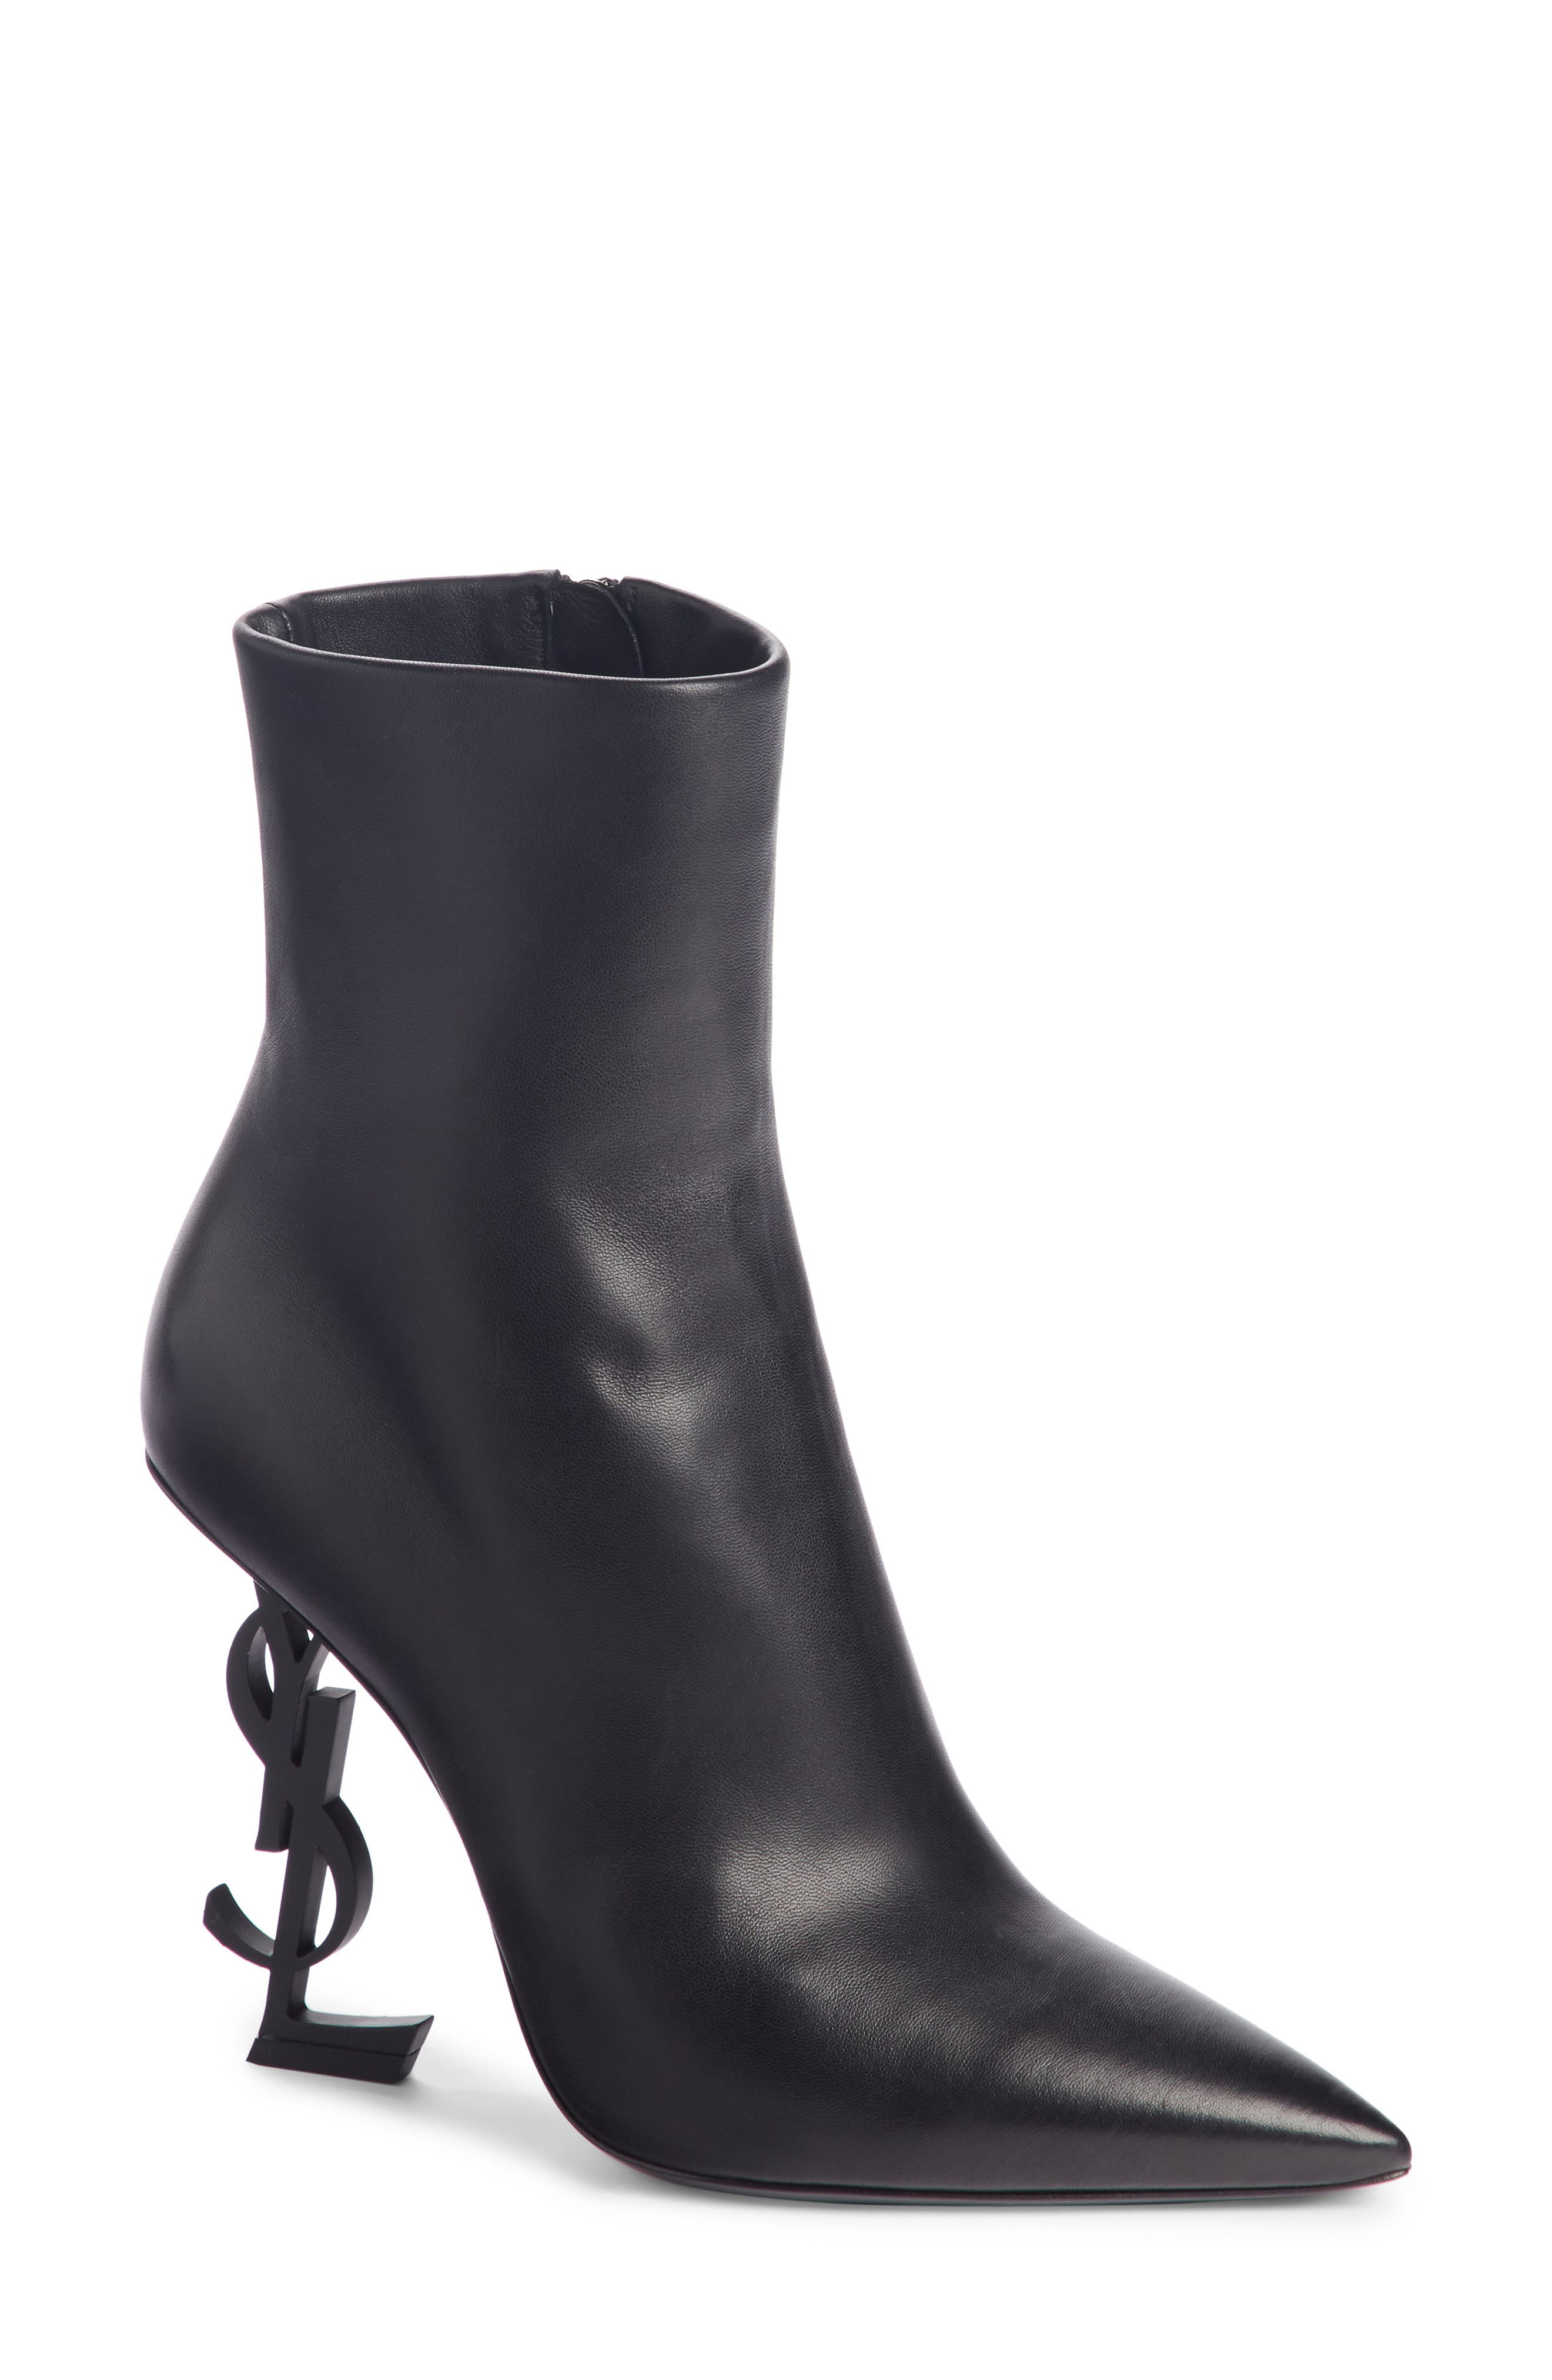 Opyum YSL Bootie,                         Main,                         color, BLACK LEATHER